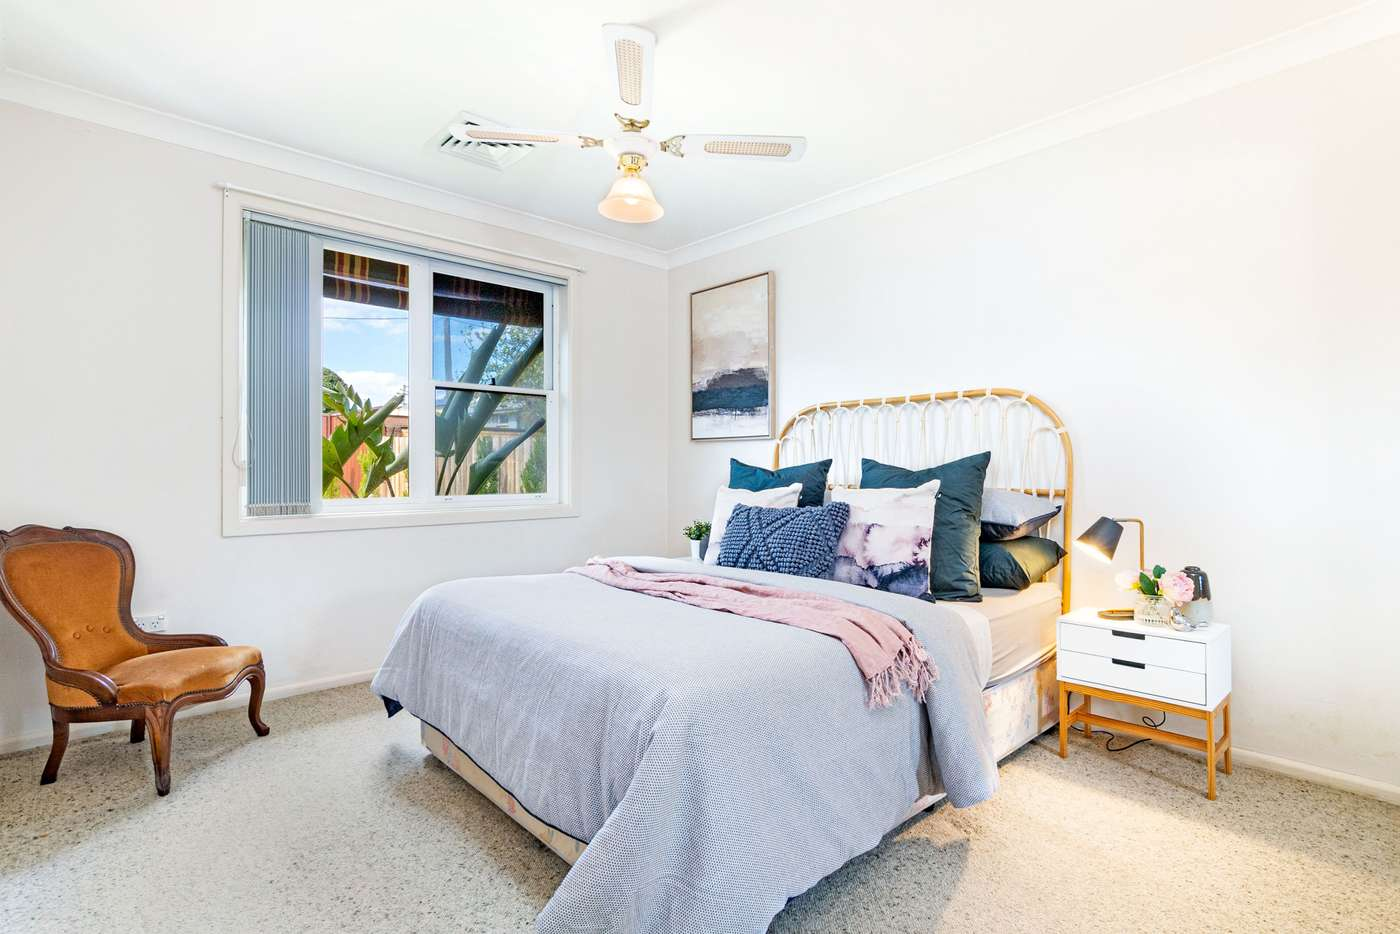 Fifth view of Homely house listing, 2 Keith Place, Baulkham Hills NSW 2153